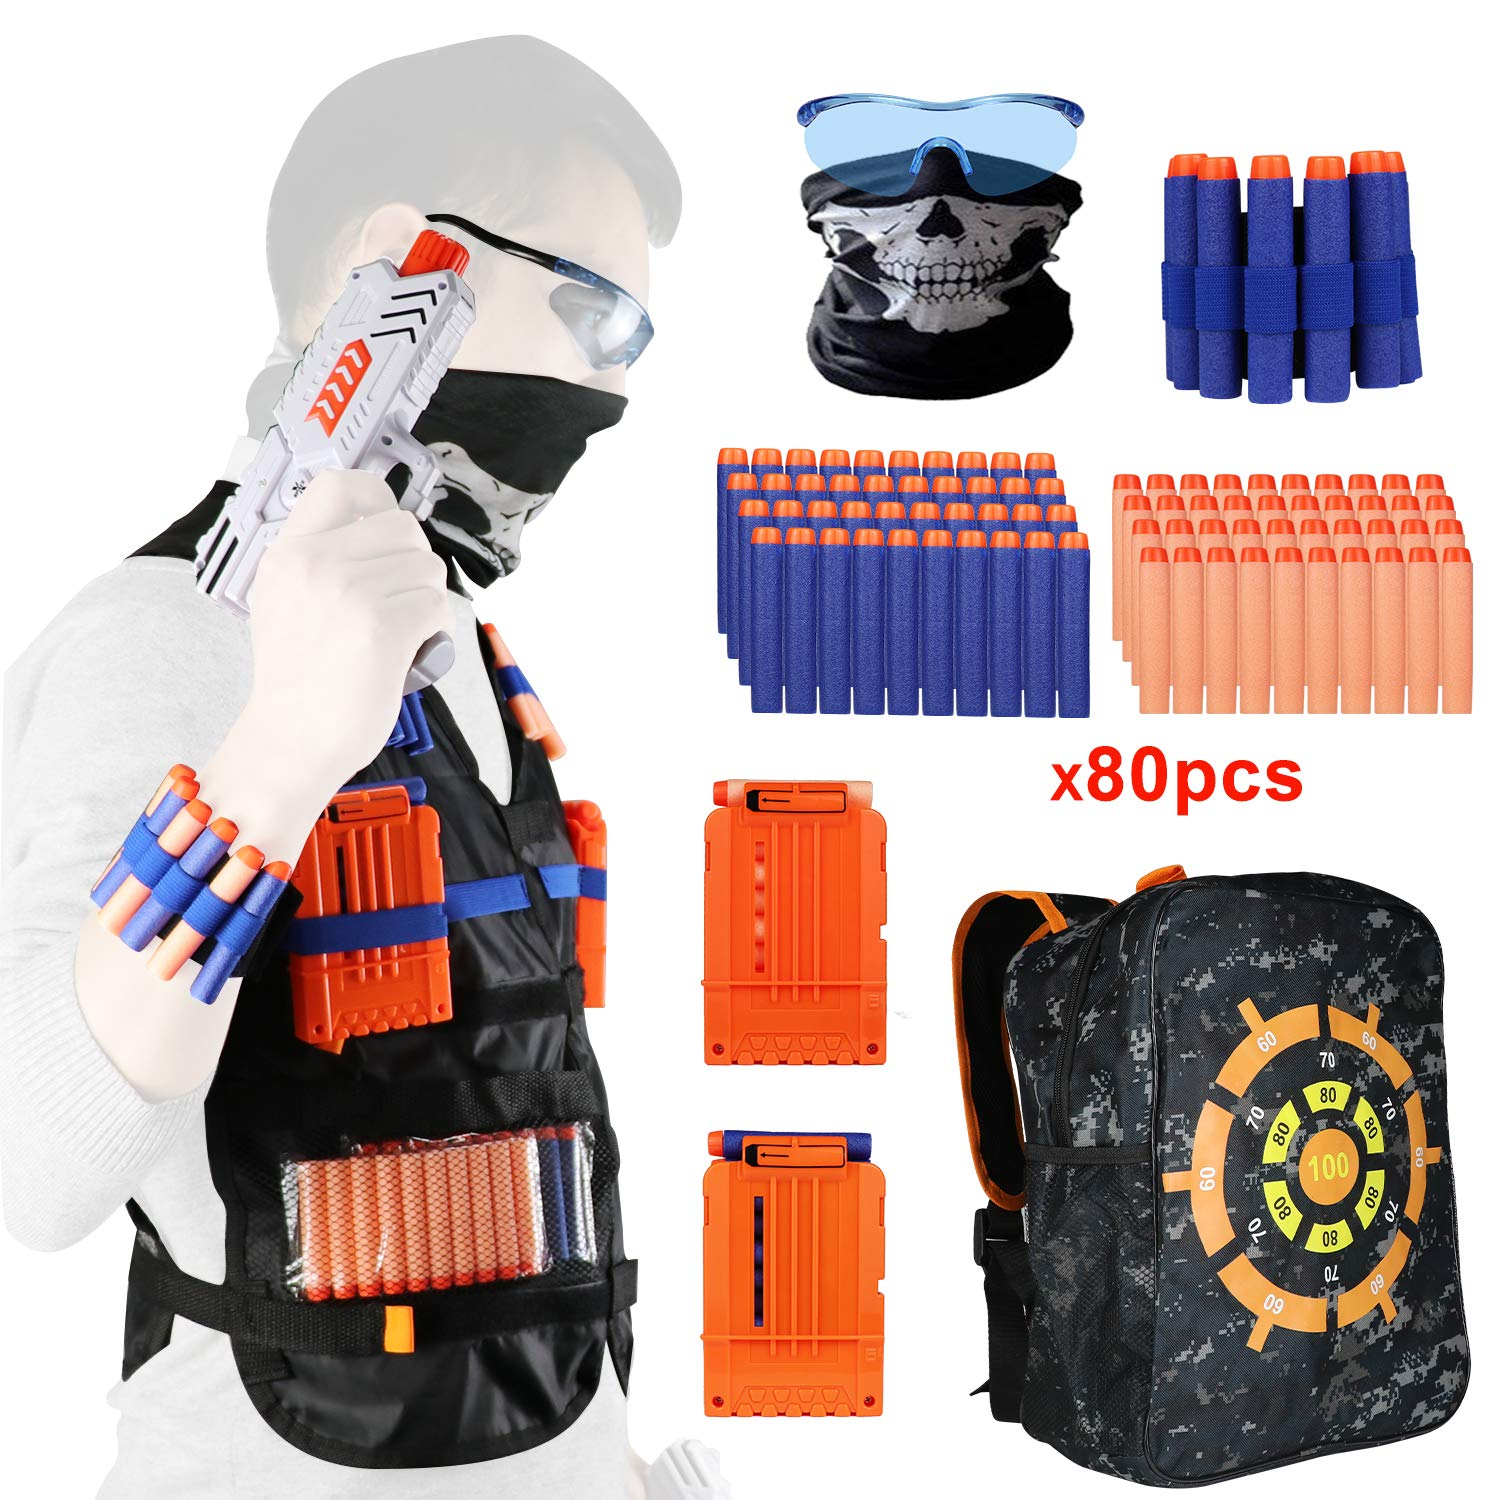 Feiboo Tactical Vest Kit for Nerf Guns N-Strike Elite Series, with 1 Shooting Target Backpack, 80 pcs Refill Darts, 2 Reload Clips, 1 Face Tube Masks, 1 Hand Wrist Bands and 1 Protective Glasses by Feiboo